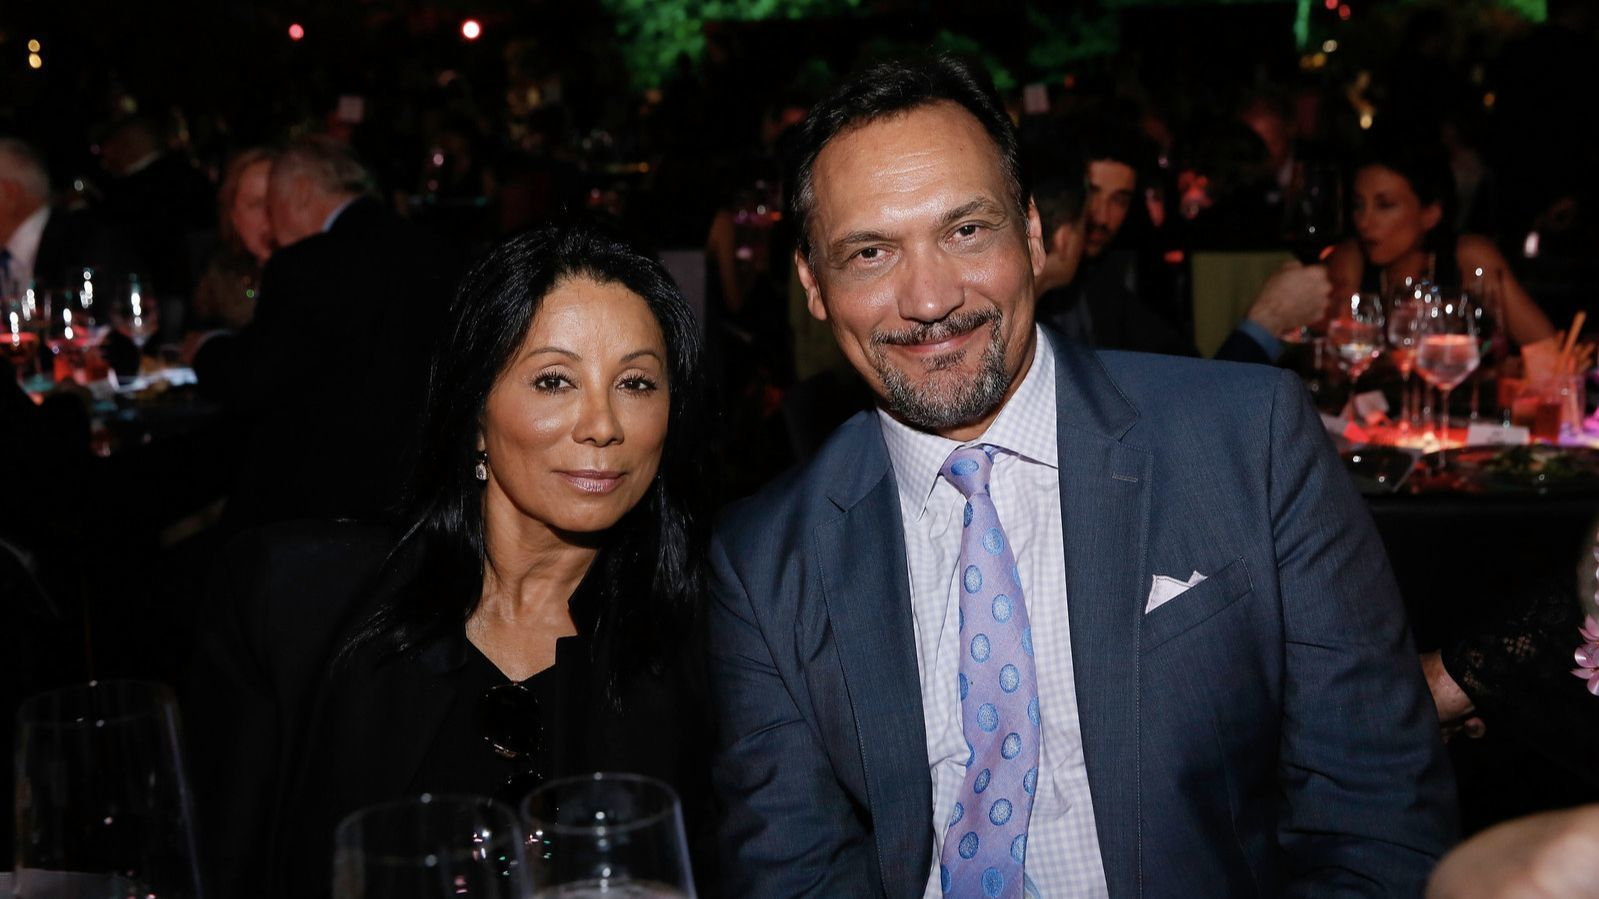 Wanda De Jesus and Jimmy Smits attend the Center Theatre Group''s anniversary festivities, which included a one-night-only performance at the Ahmanson Theatre as well as a dinner in Grand Park.